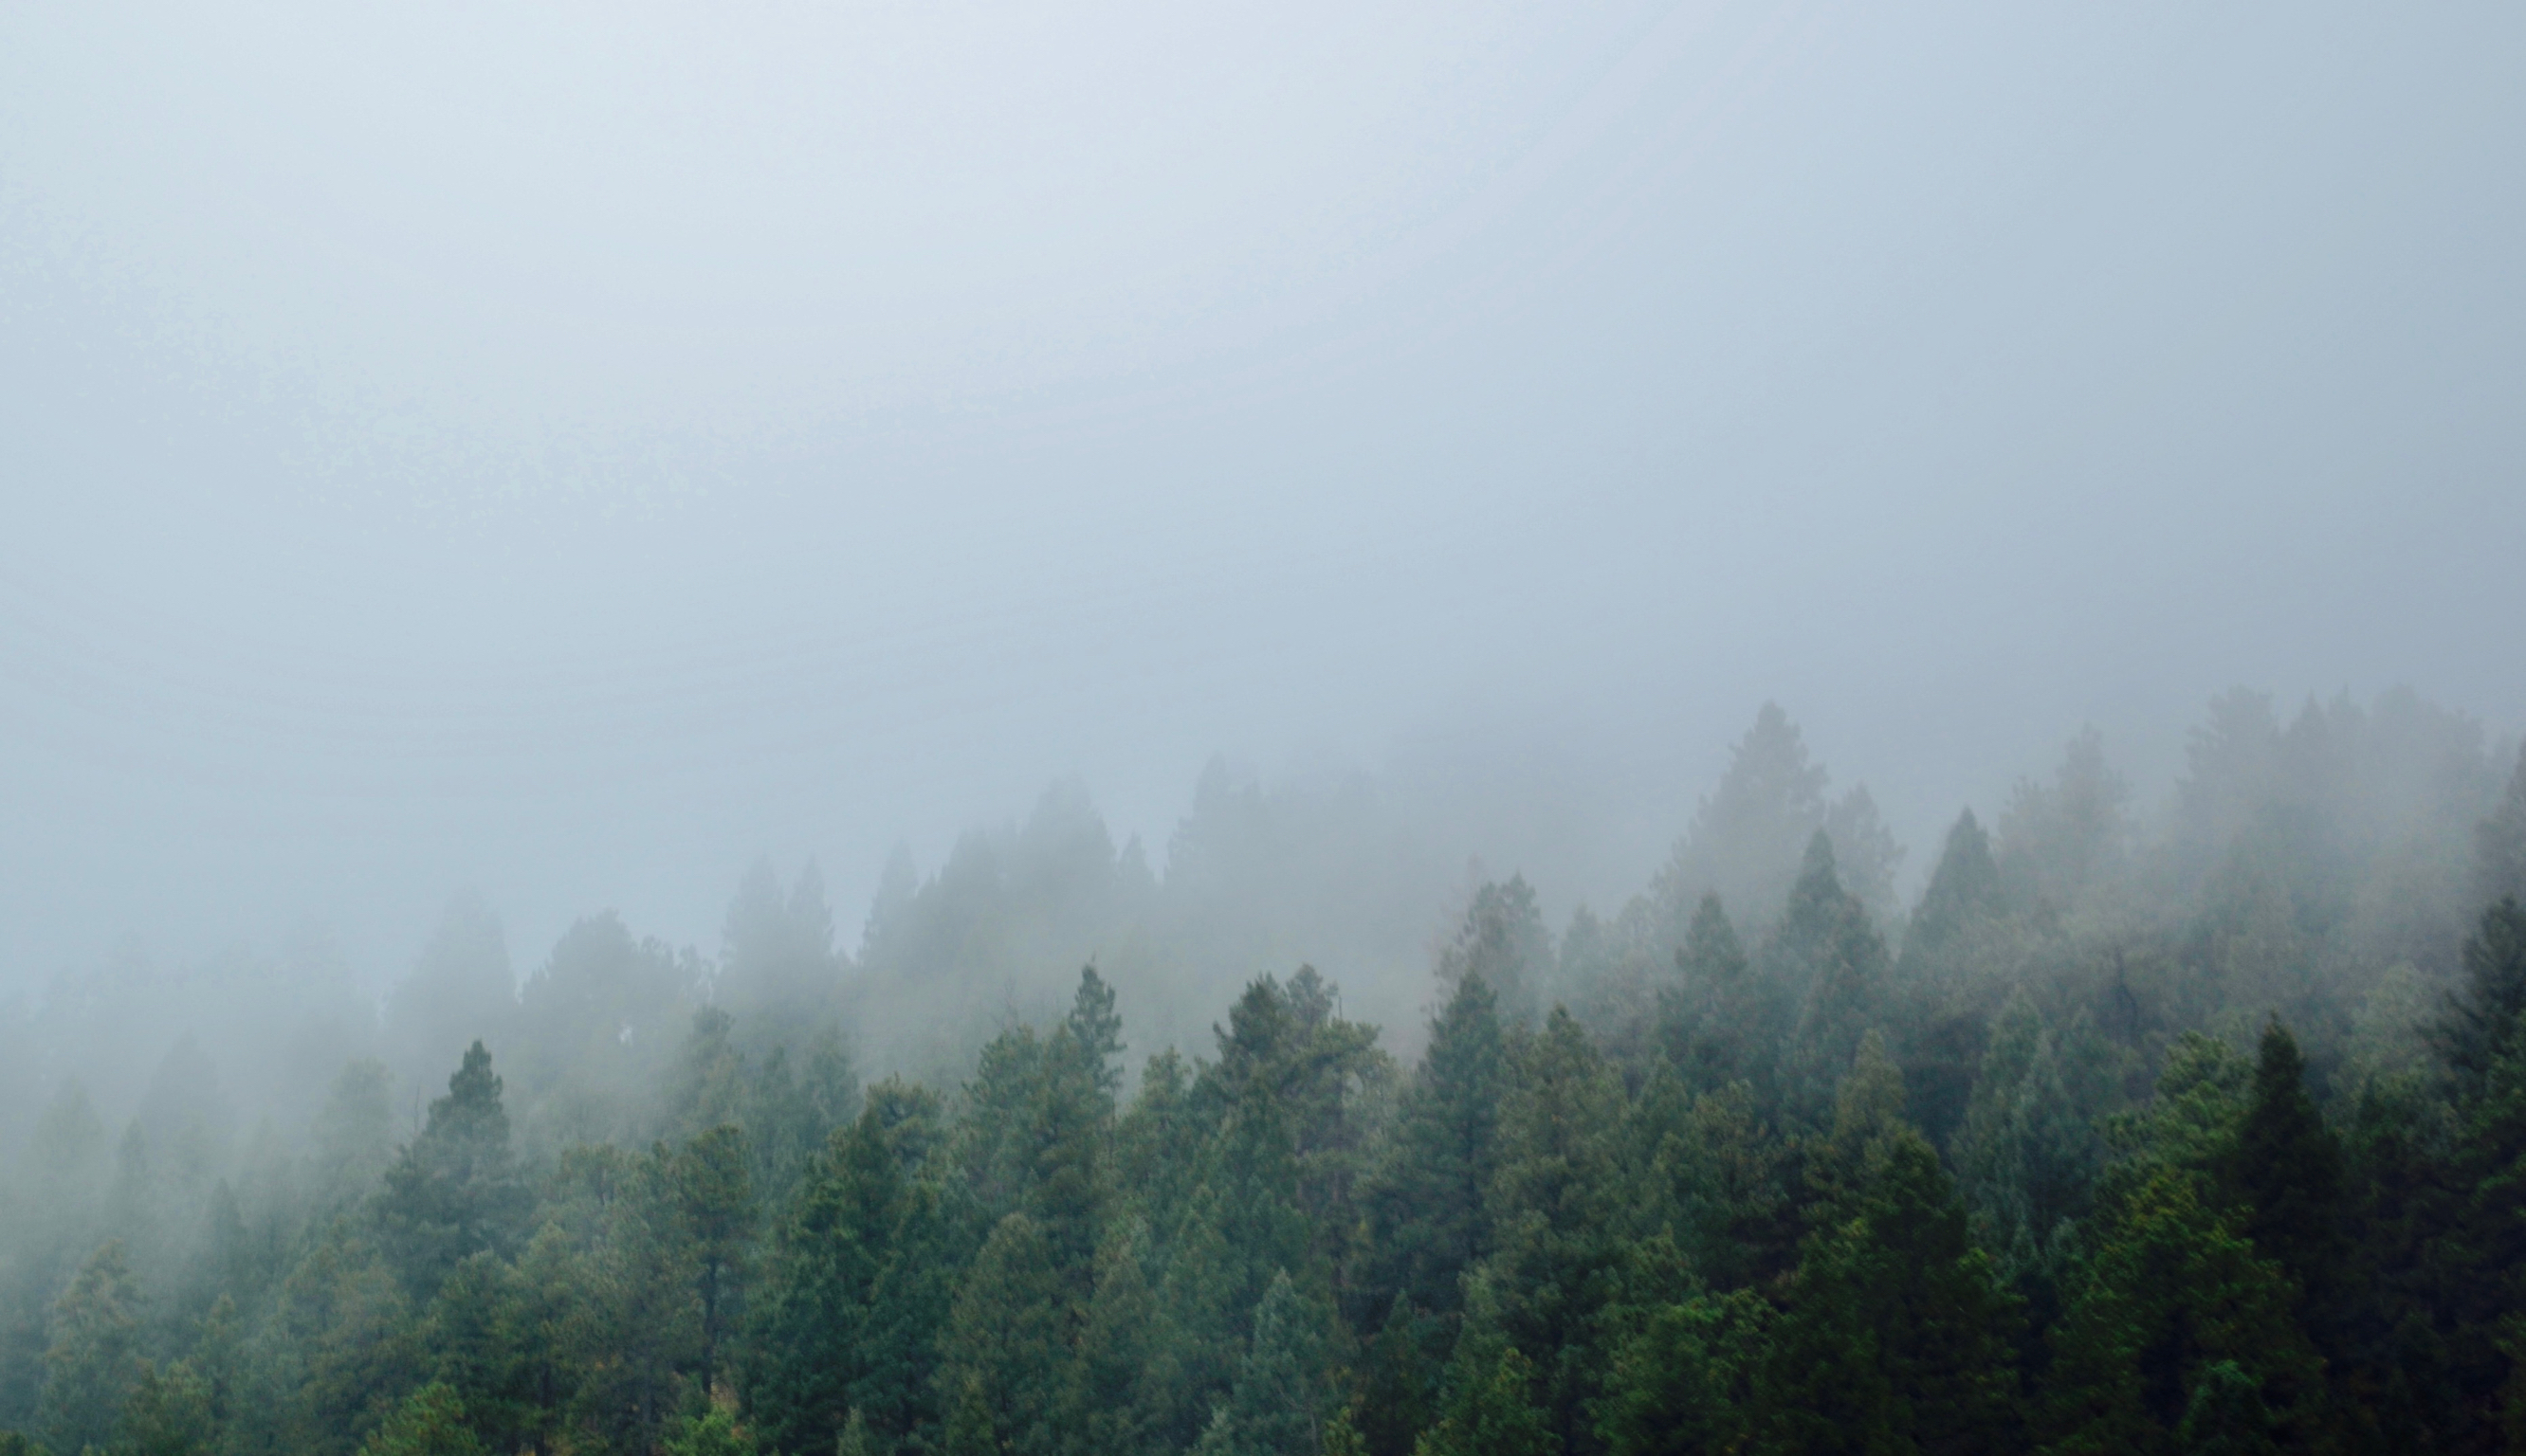 Fog rolling in over the mountain evergreens.